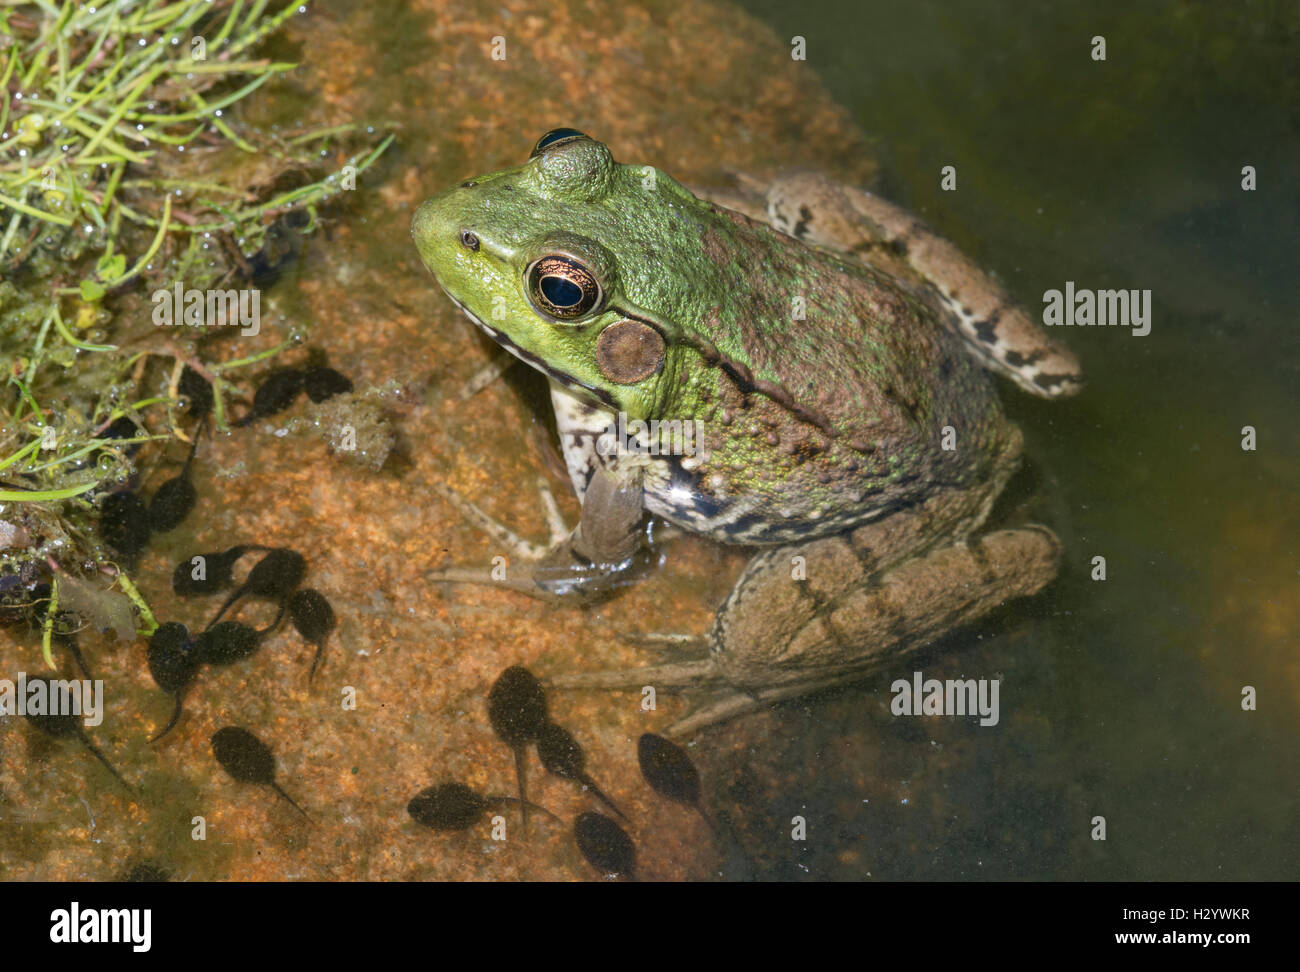 La grenouille verte (Rana clamitans), Étang, E USA par Skip Moody / Photo Dembinsky Associates Photo Stock